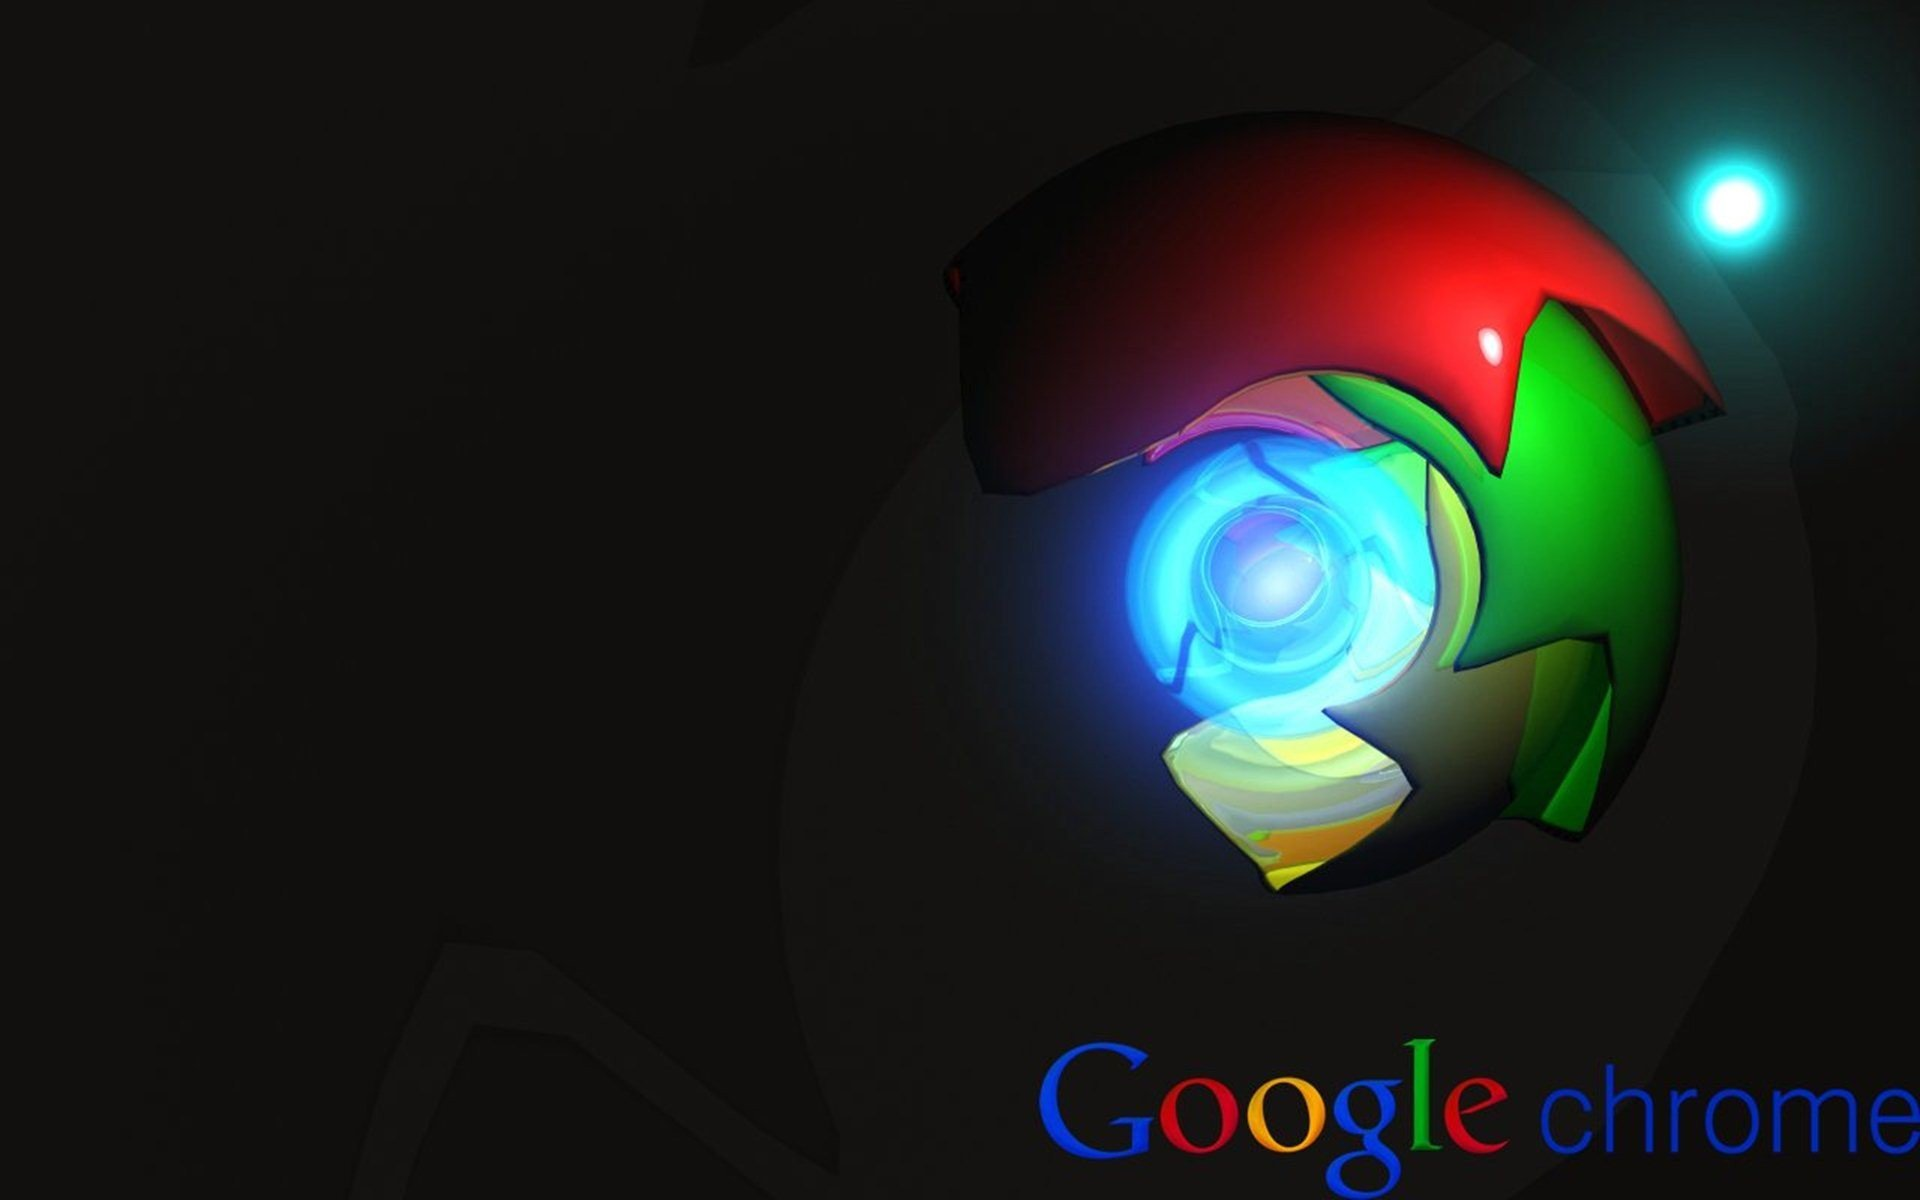 Google Chrome Computer Logo Poster Wallpaper 1920x1200 676373